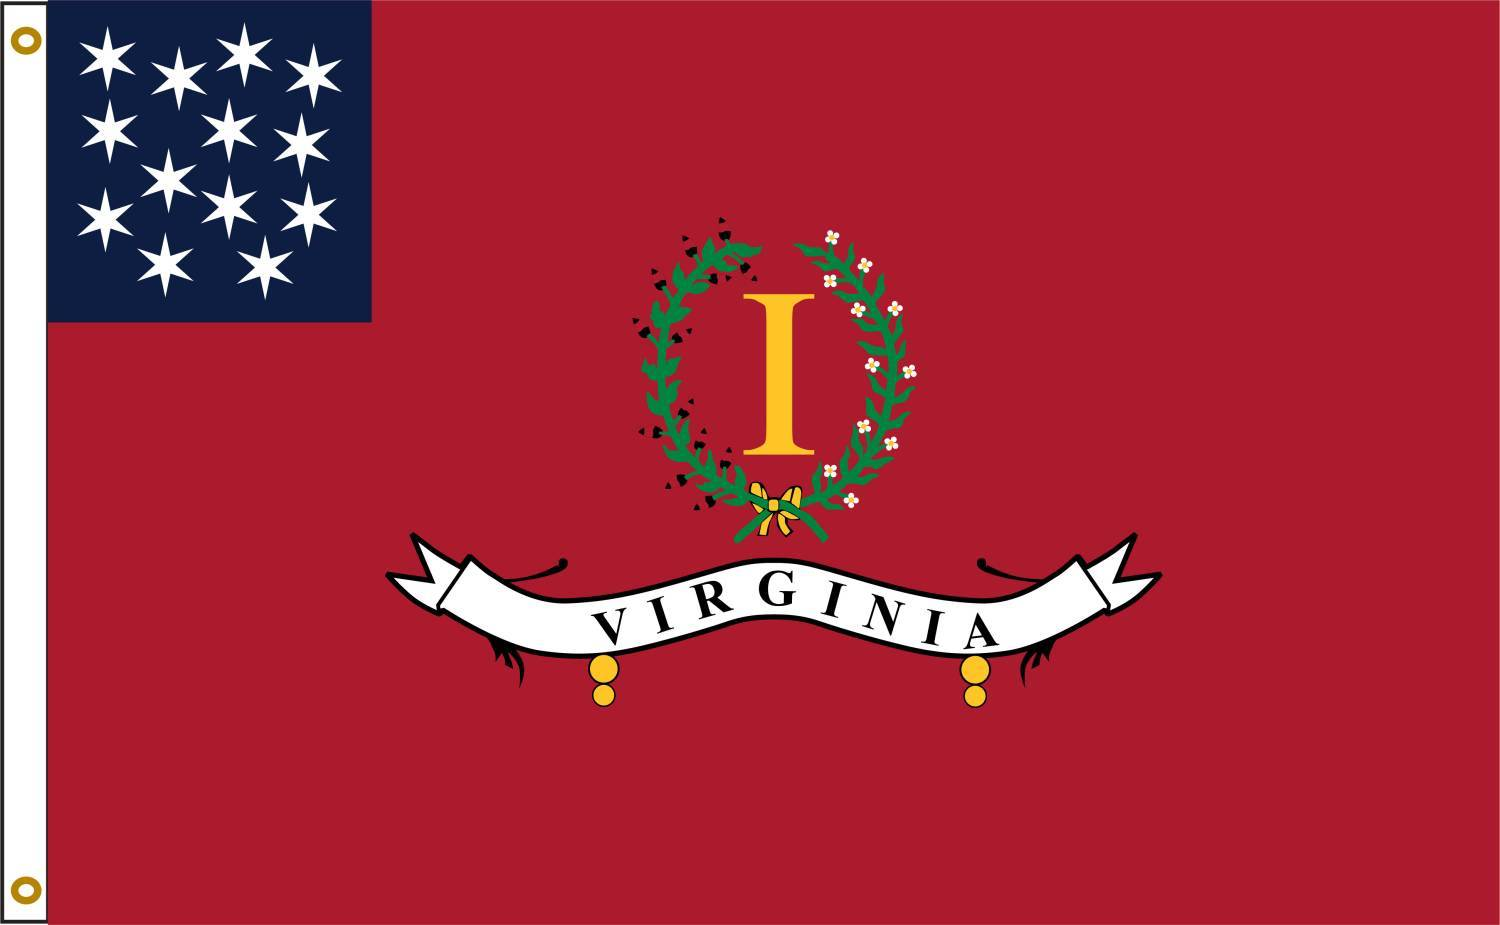 1st Virginia Regiment Flag